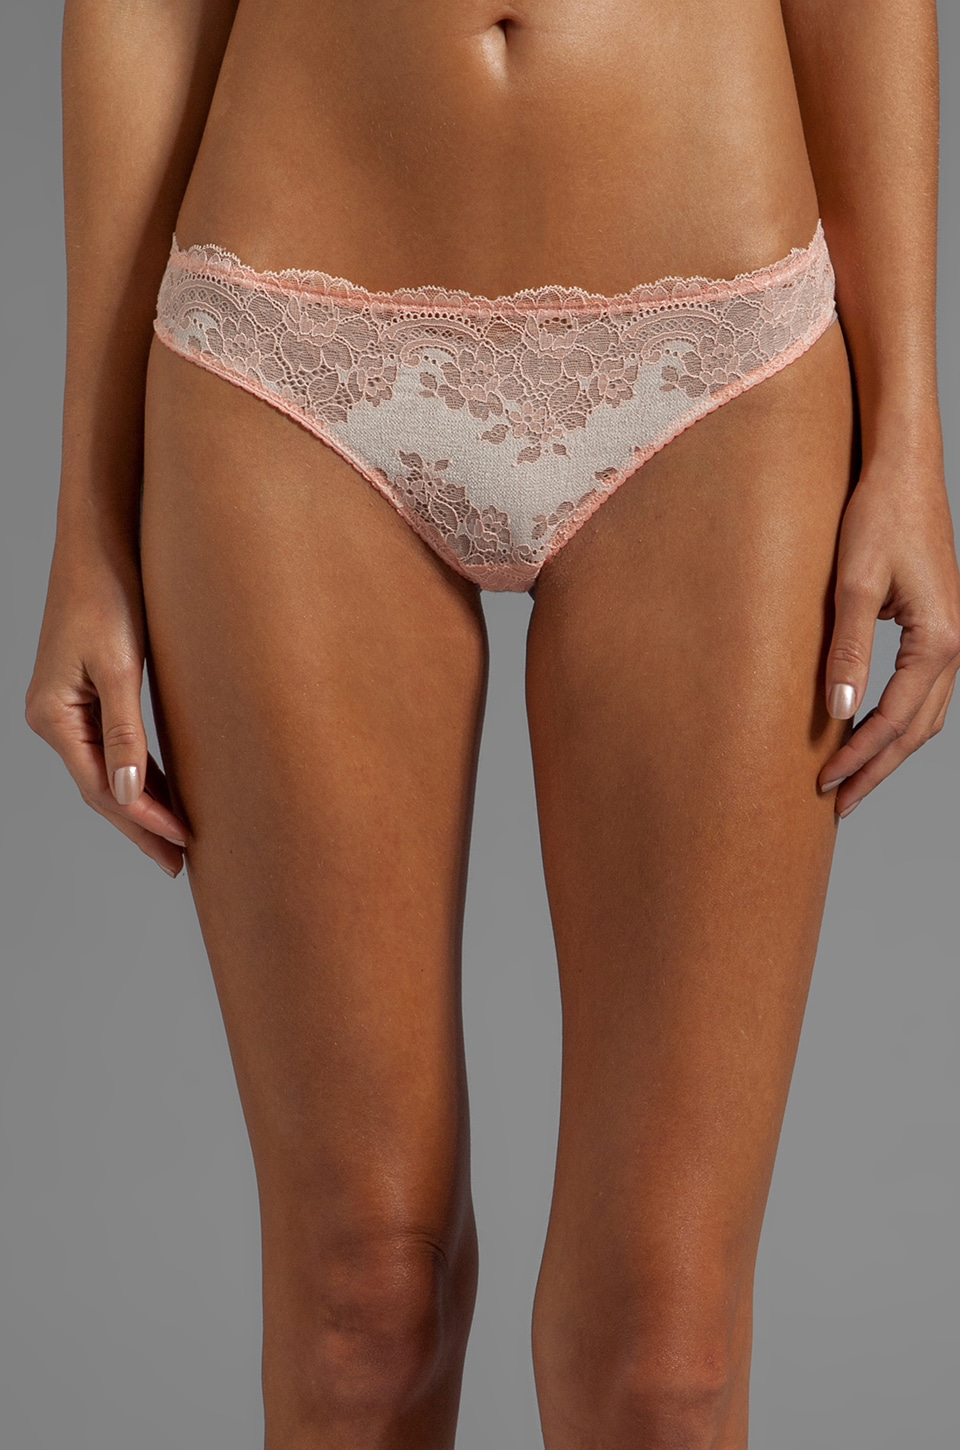 Cosabella Queen of Hearts LR Thong in Bellini/Sand